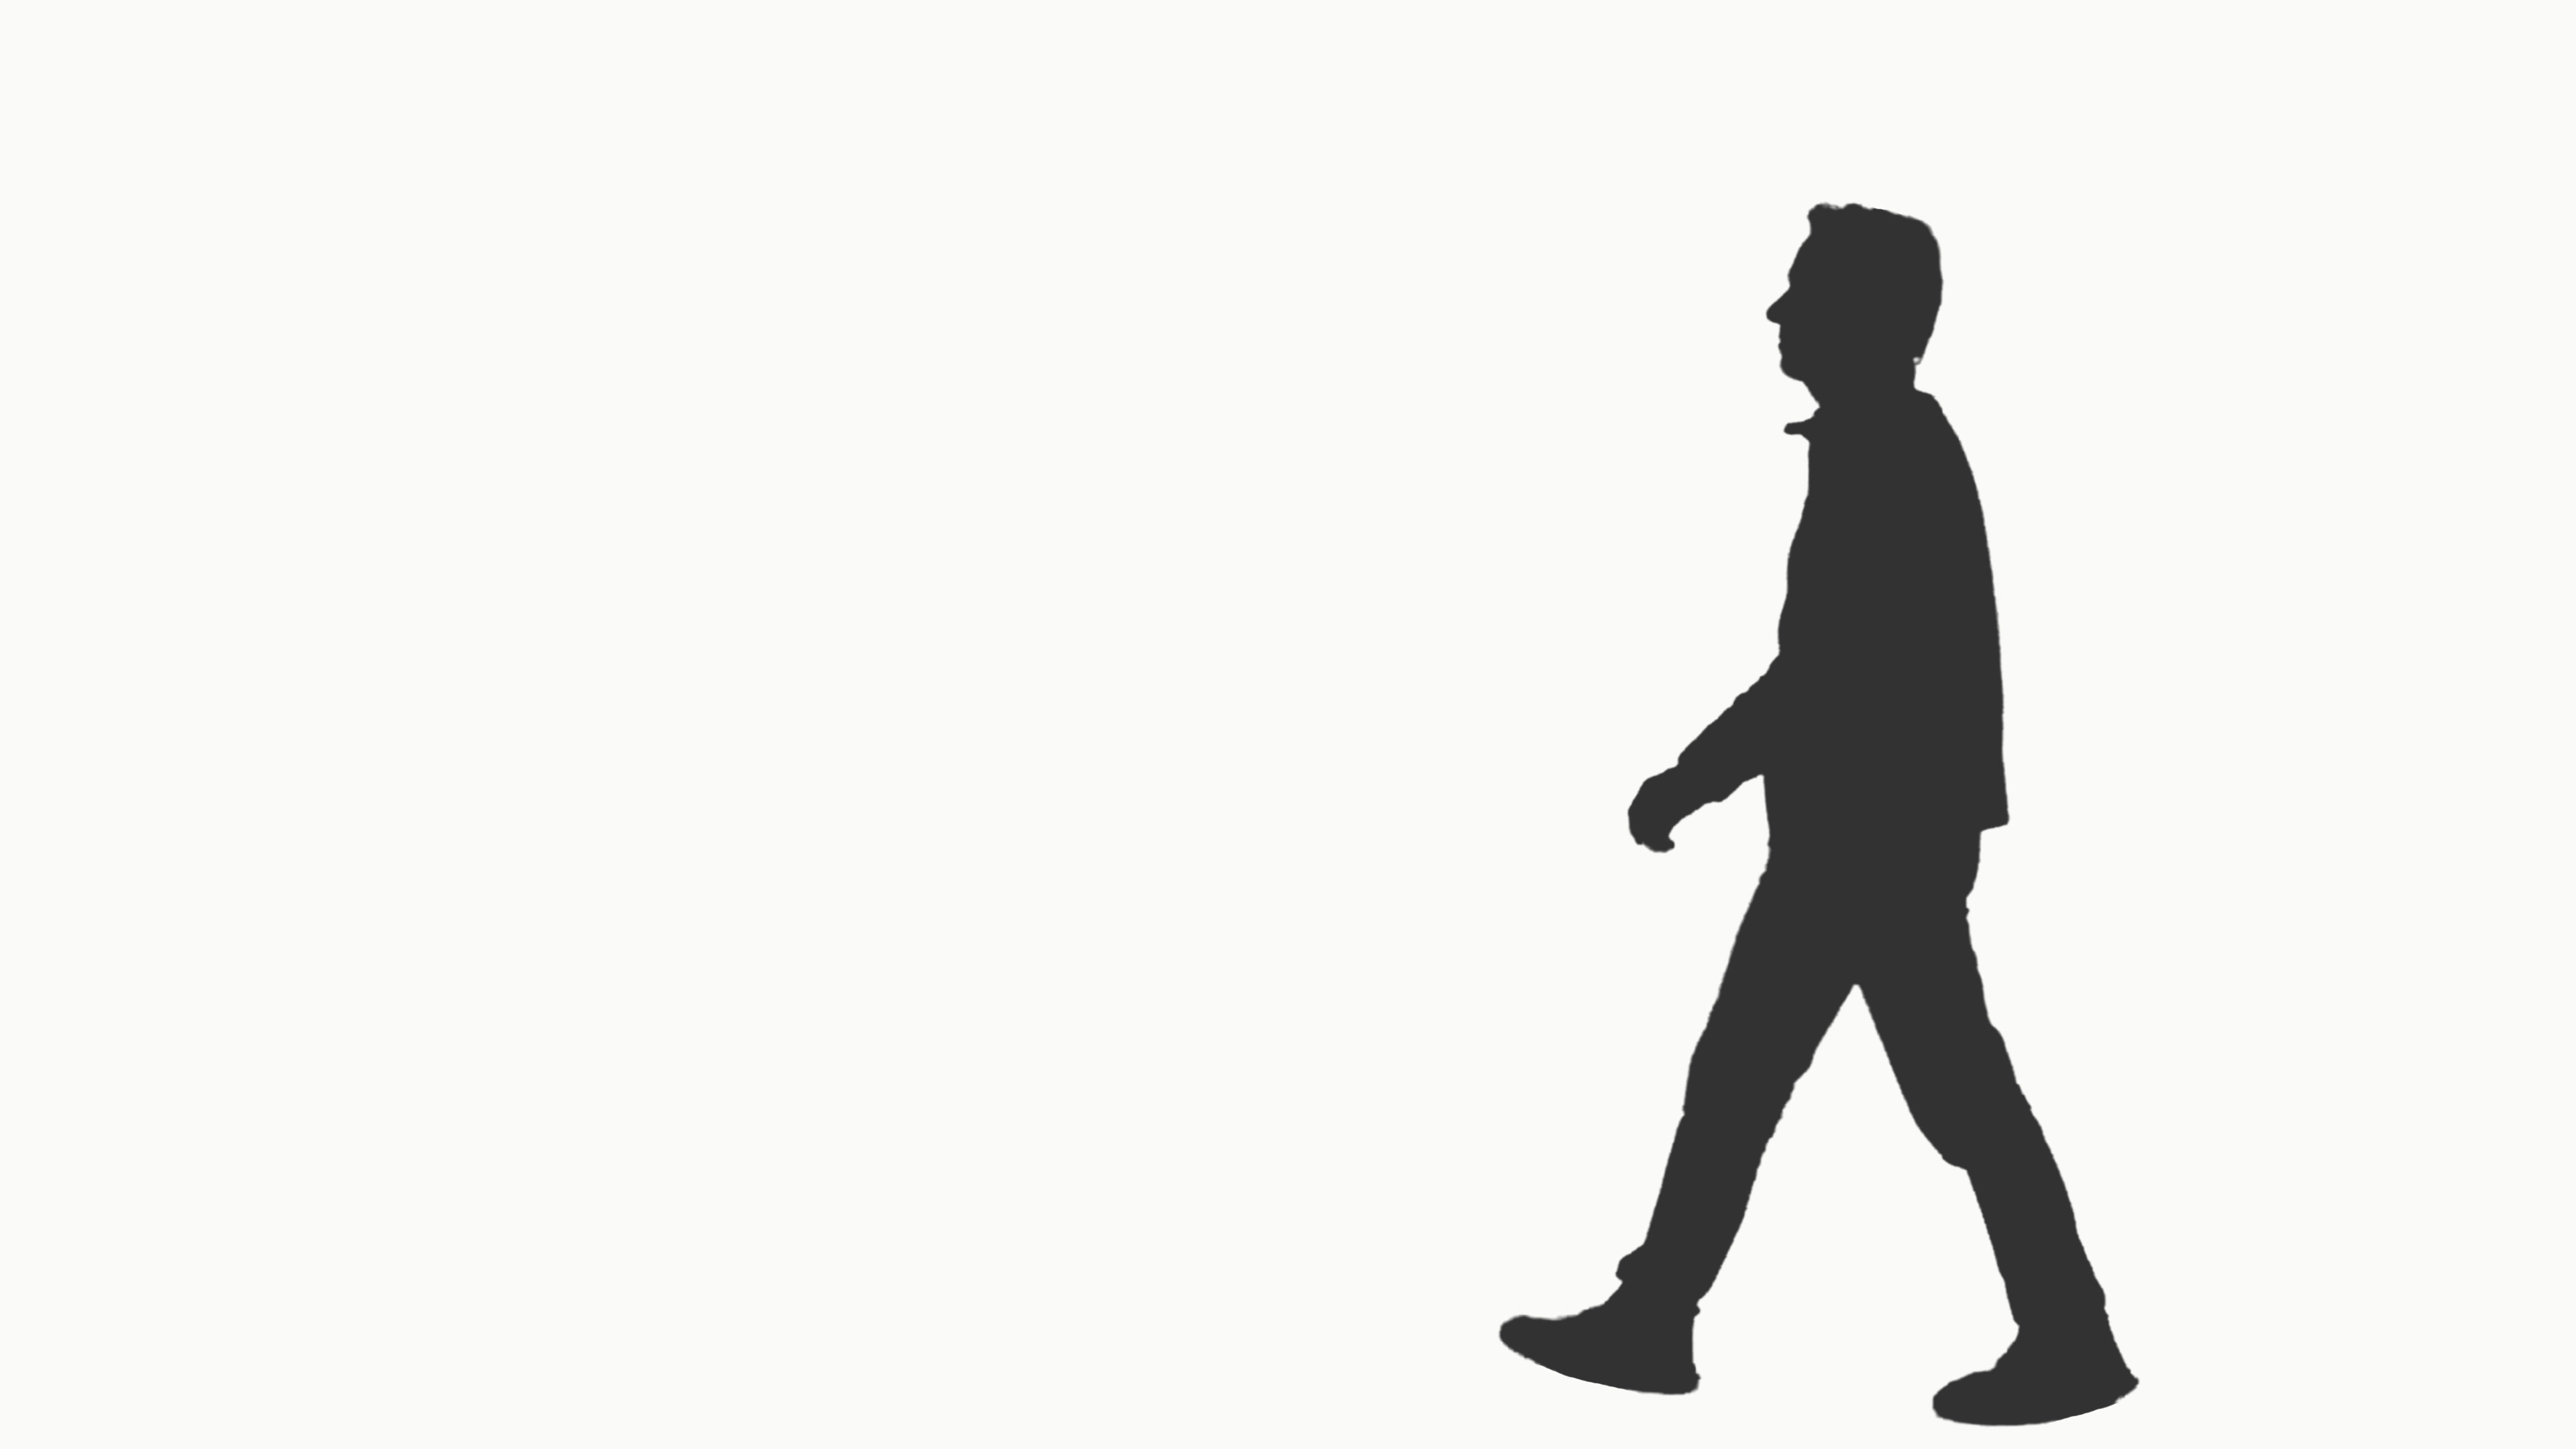 3840x2160 Silhouette Of A Man Walking On Transparent Background, Alpha